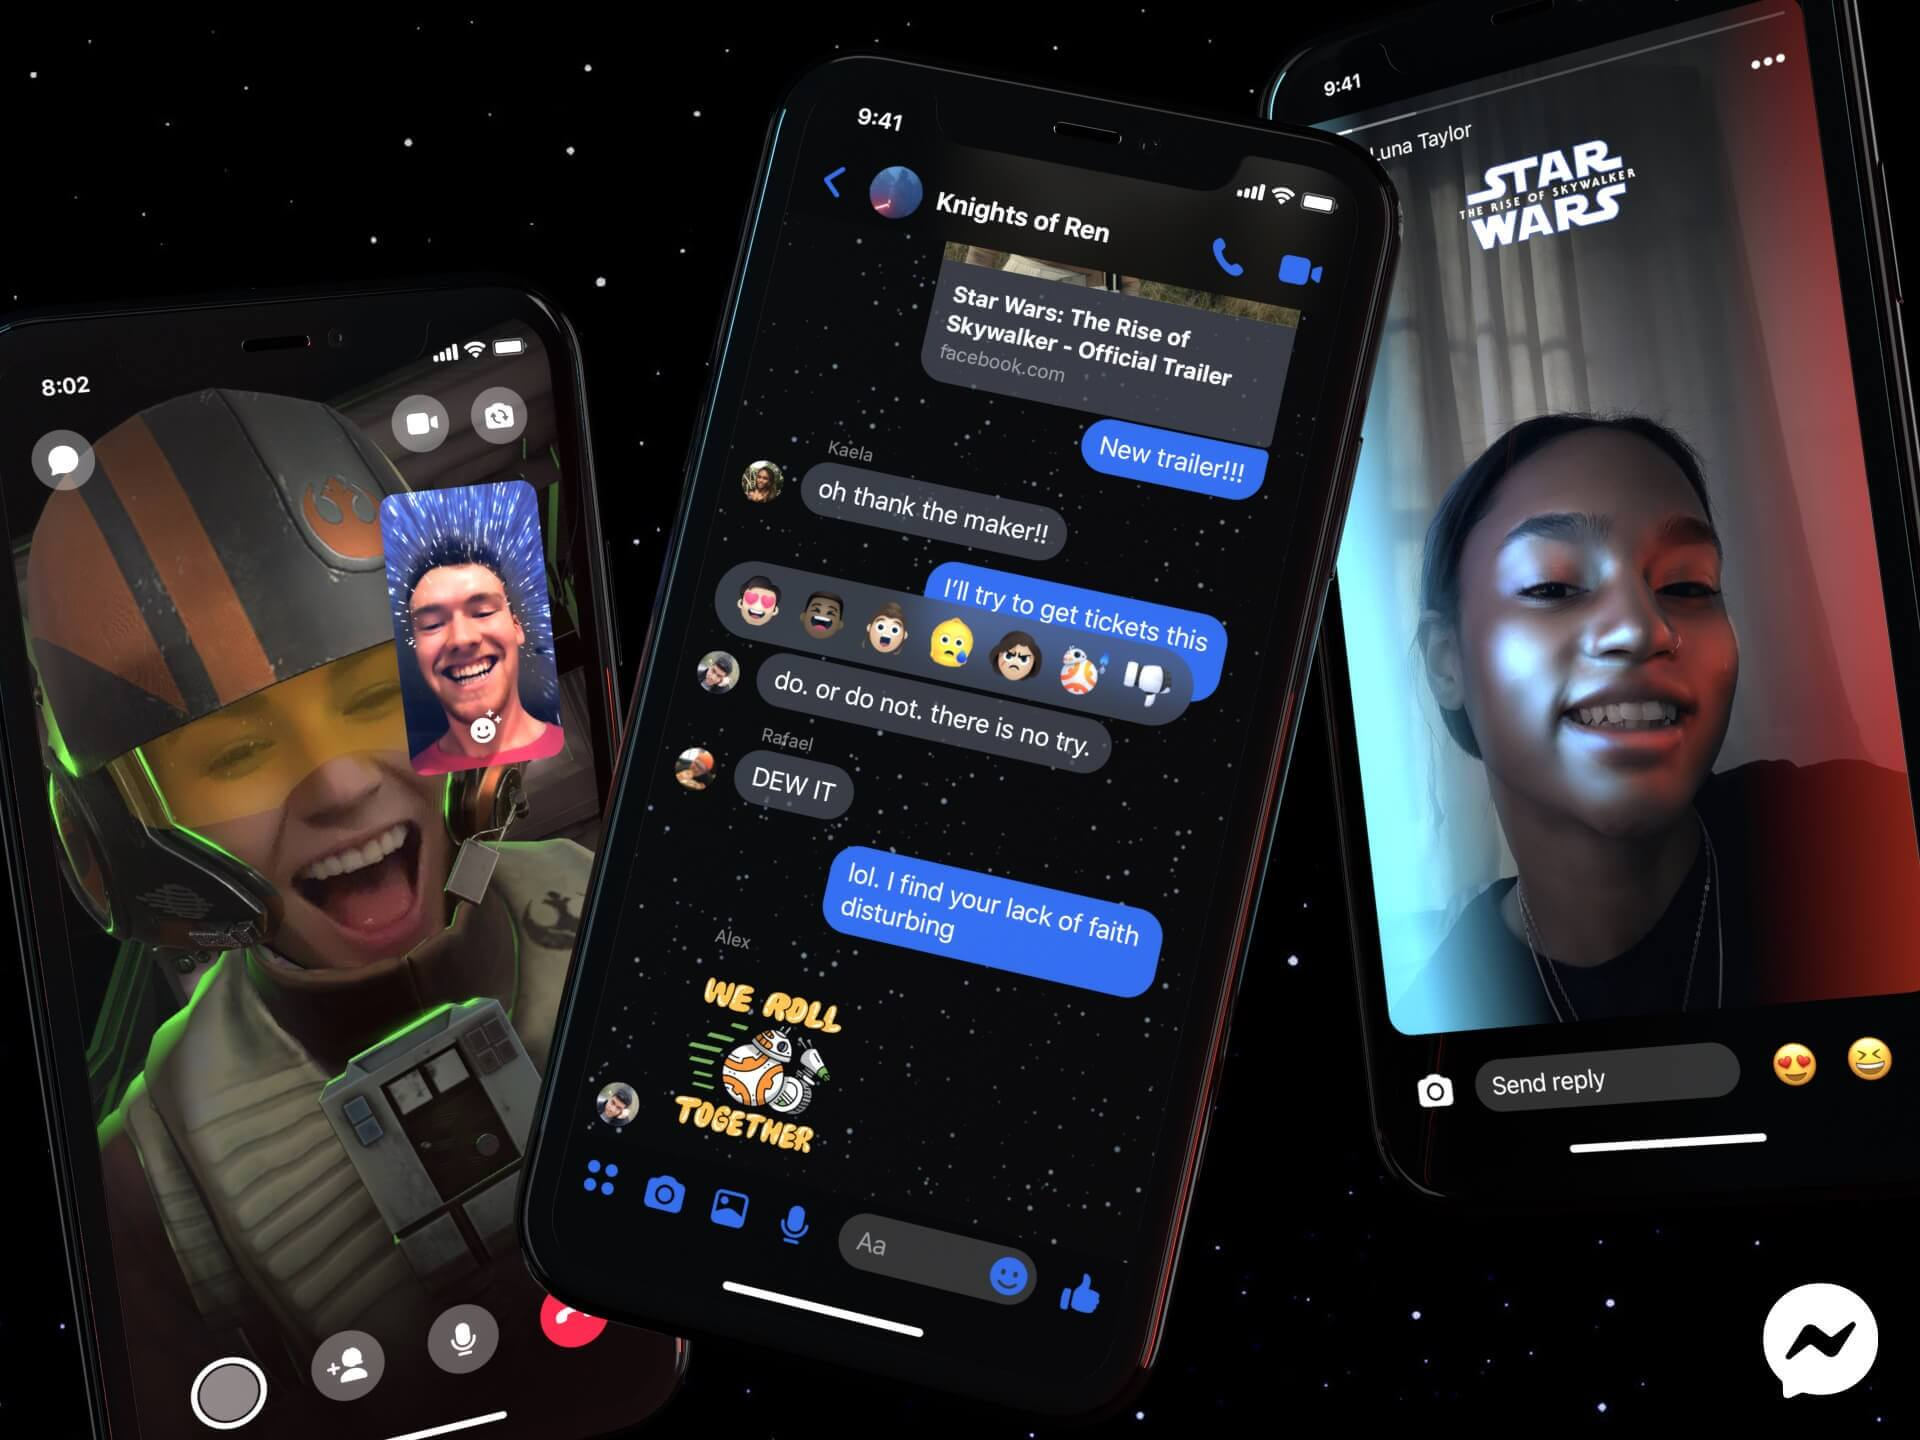 Facebook's Messenger now has a Star Wars-themed dark mode